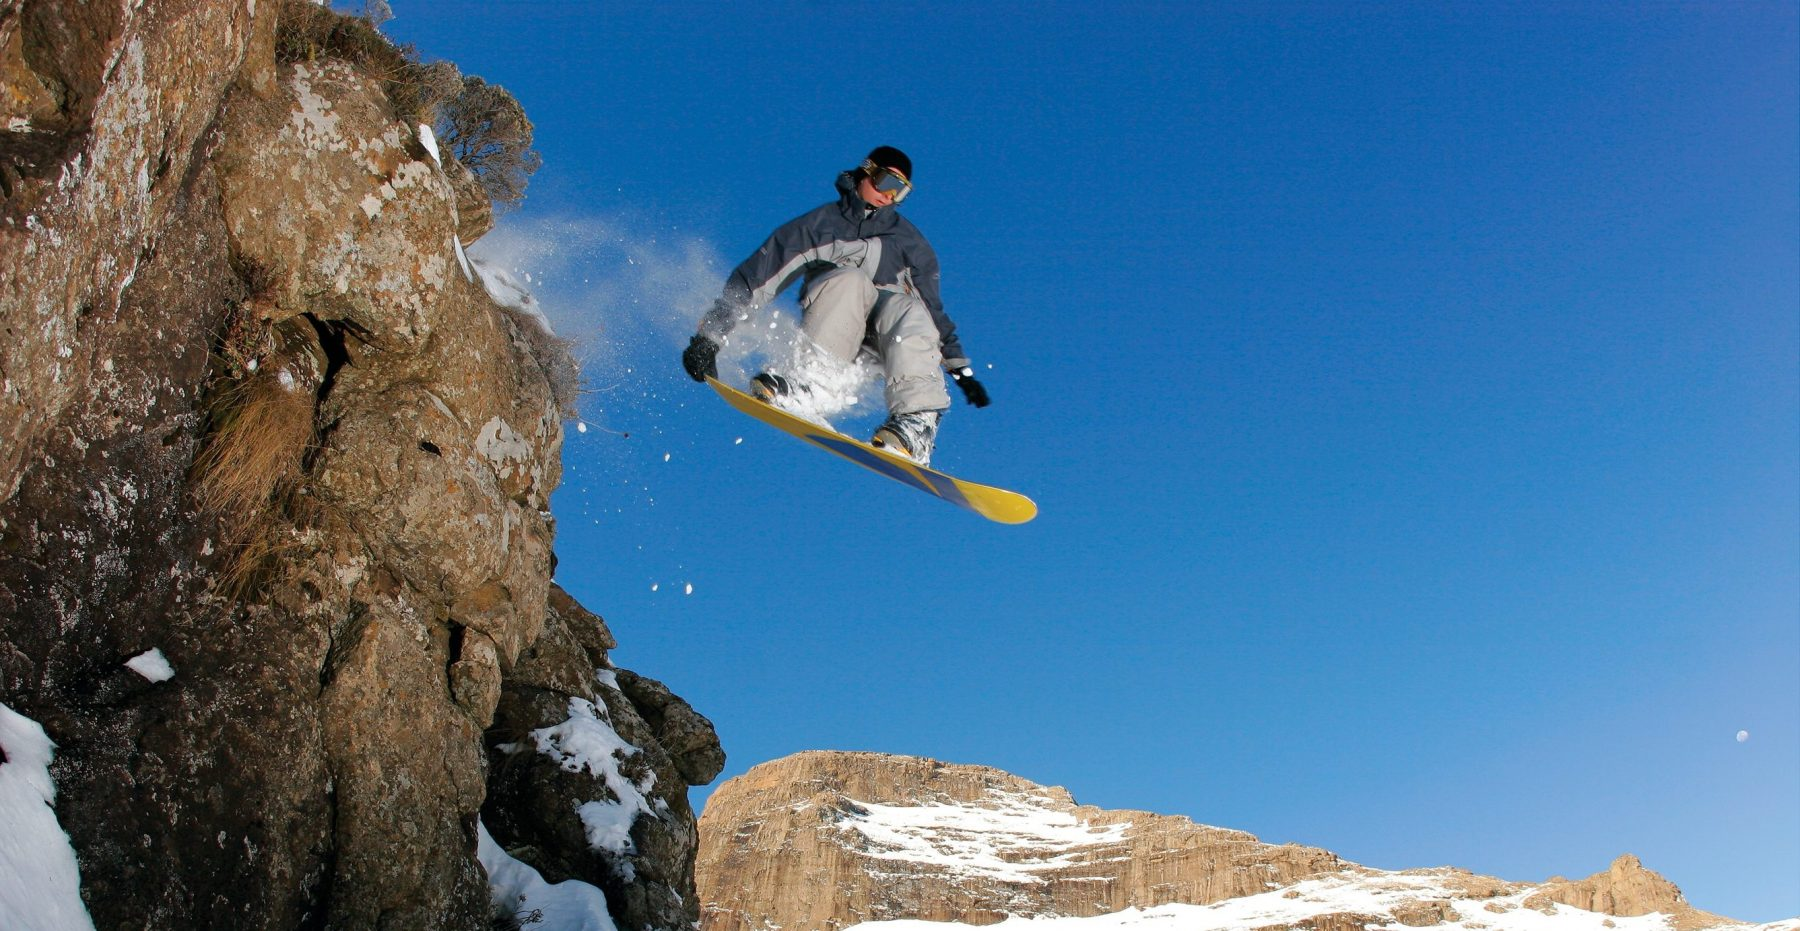 A snowboarder jumps off a cliff in rural Lesotho.